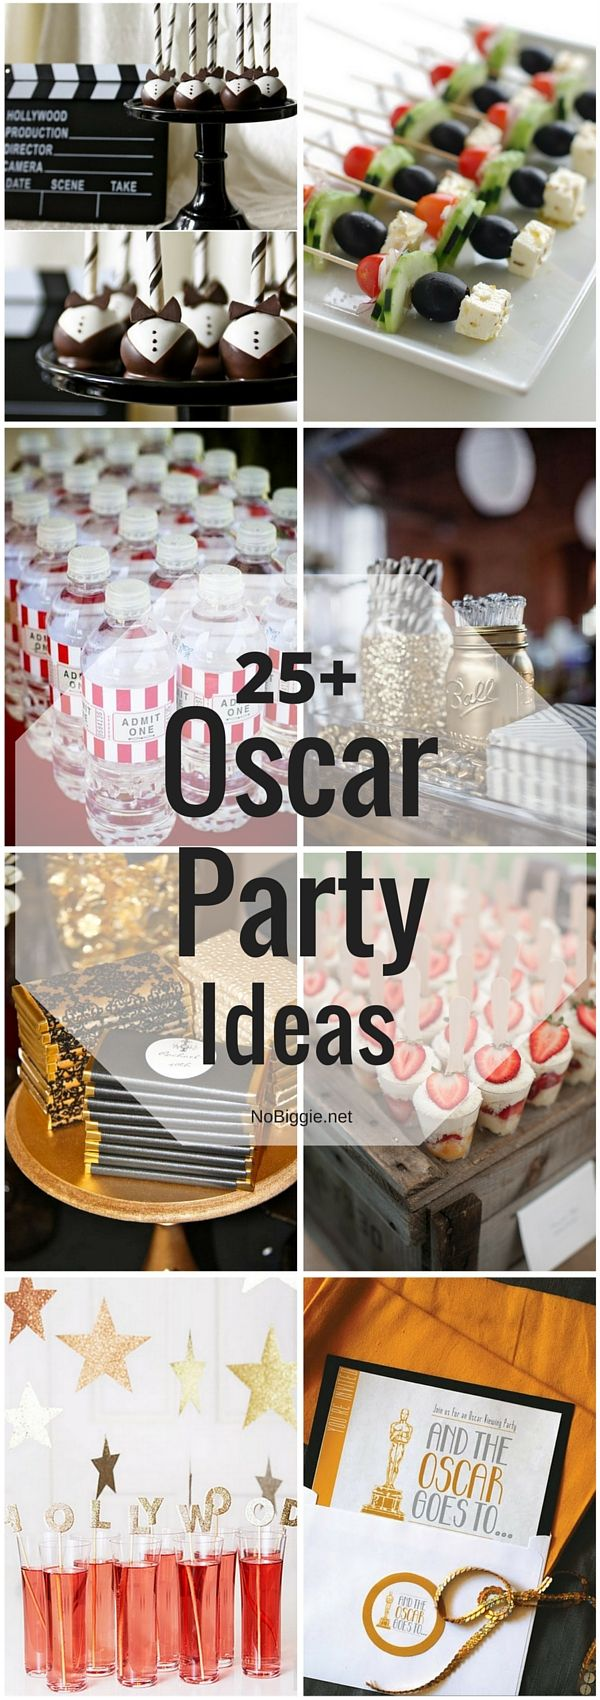 25+ Oscar Party Ideas | NoBiggie.net